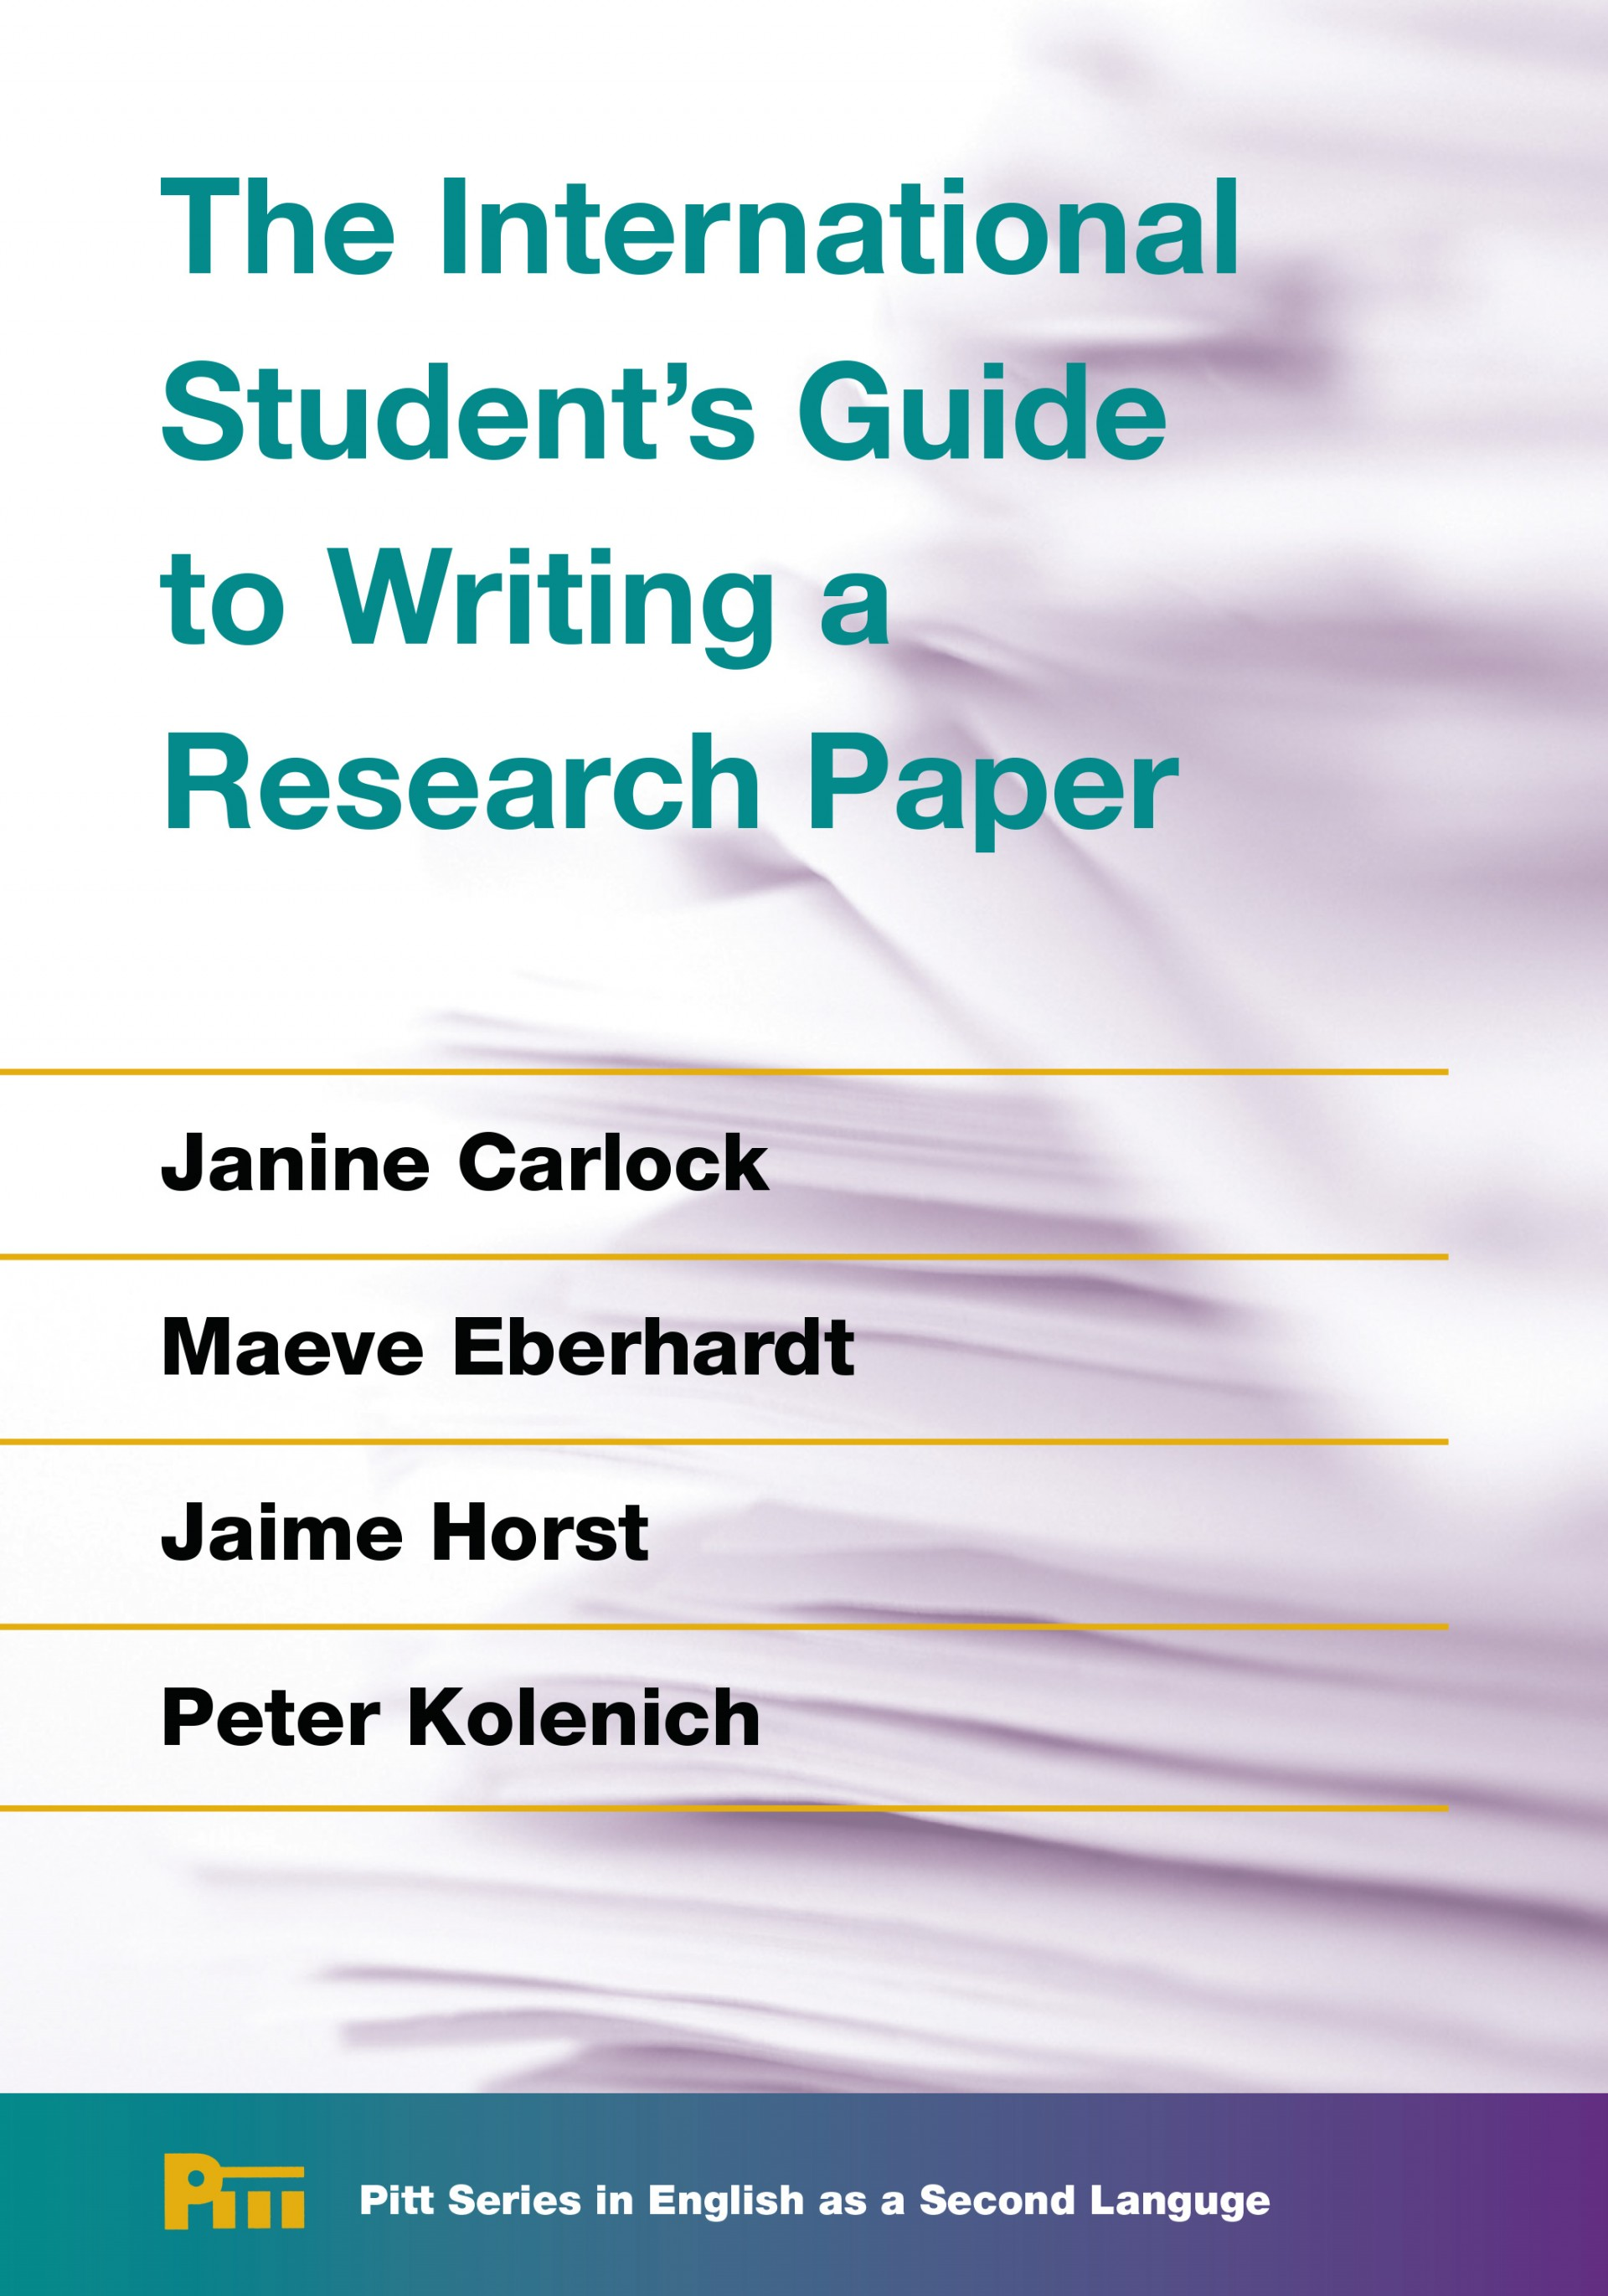 012 Writing Of Research Paper Fascinating Sample Introduction Steps A Pdf 1920